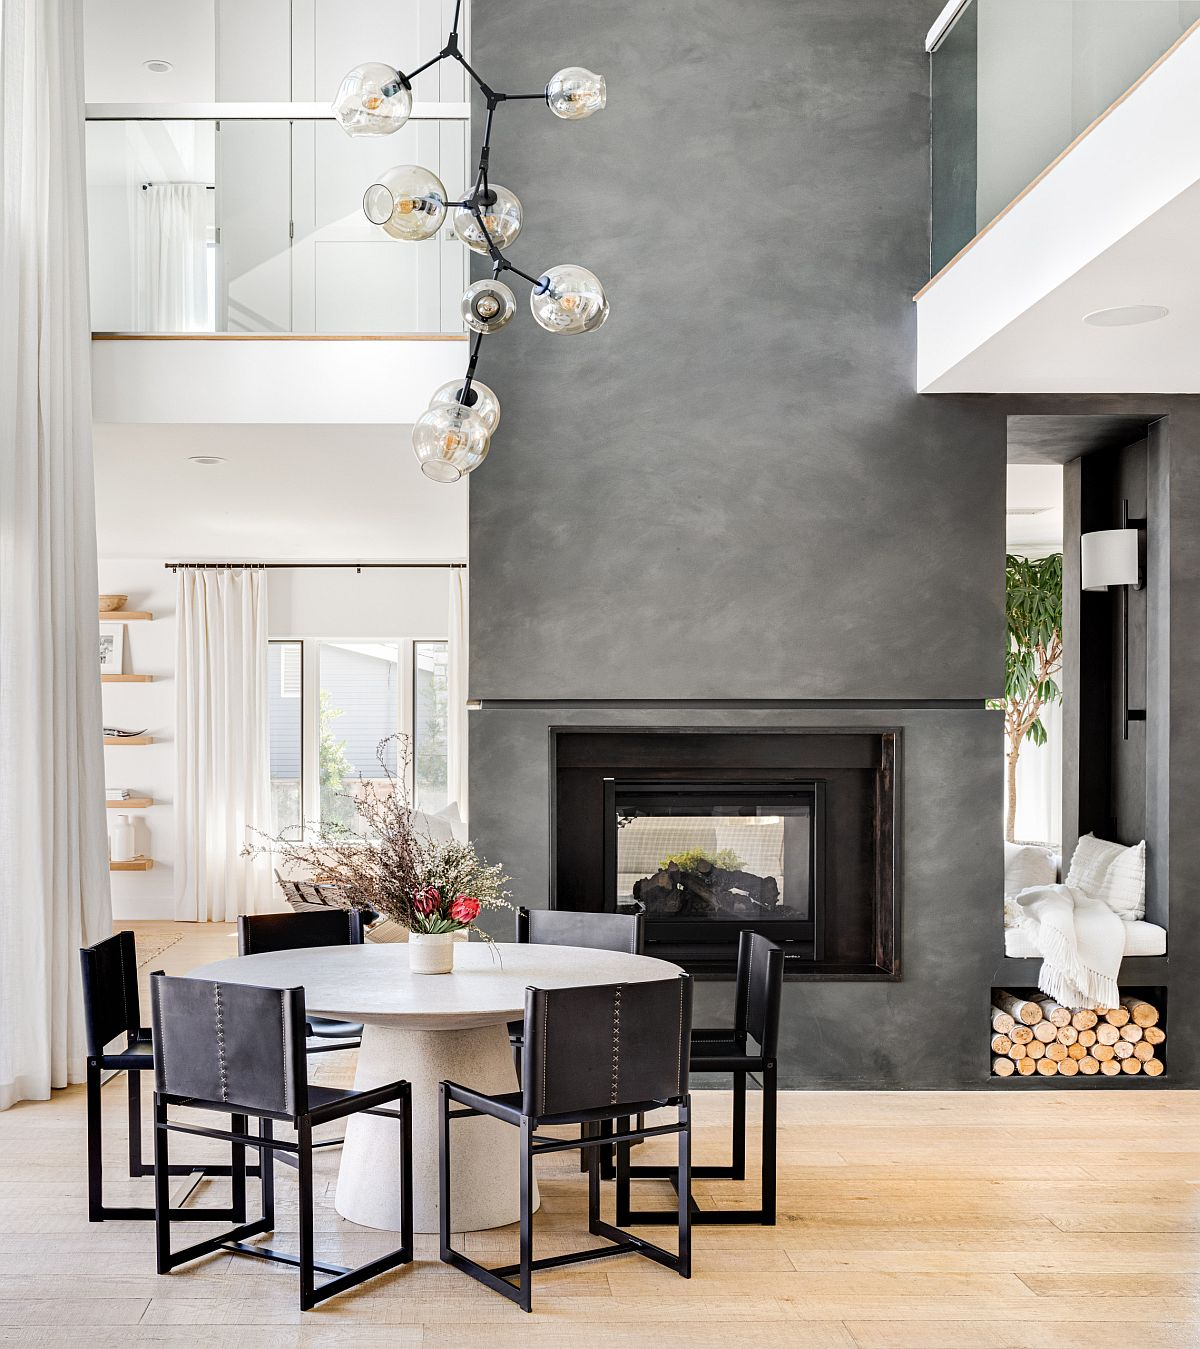 Fabulous fireplace in gray cement becomes the focal point of this amazing dining space